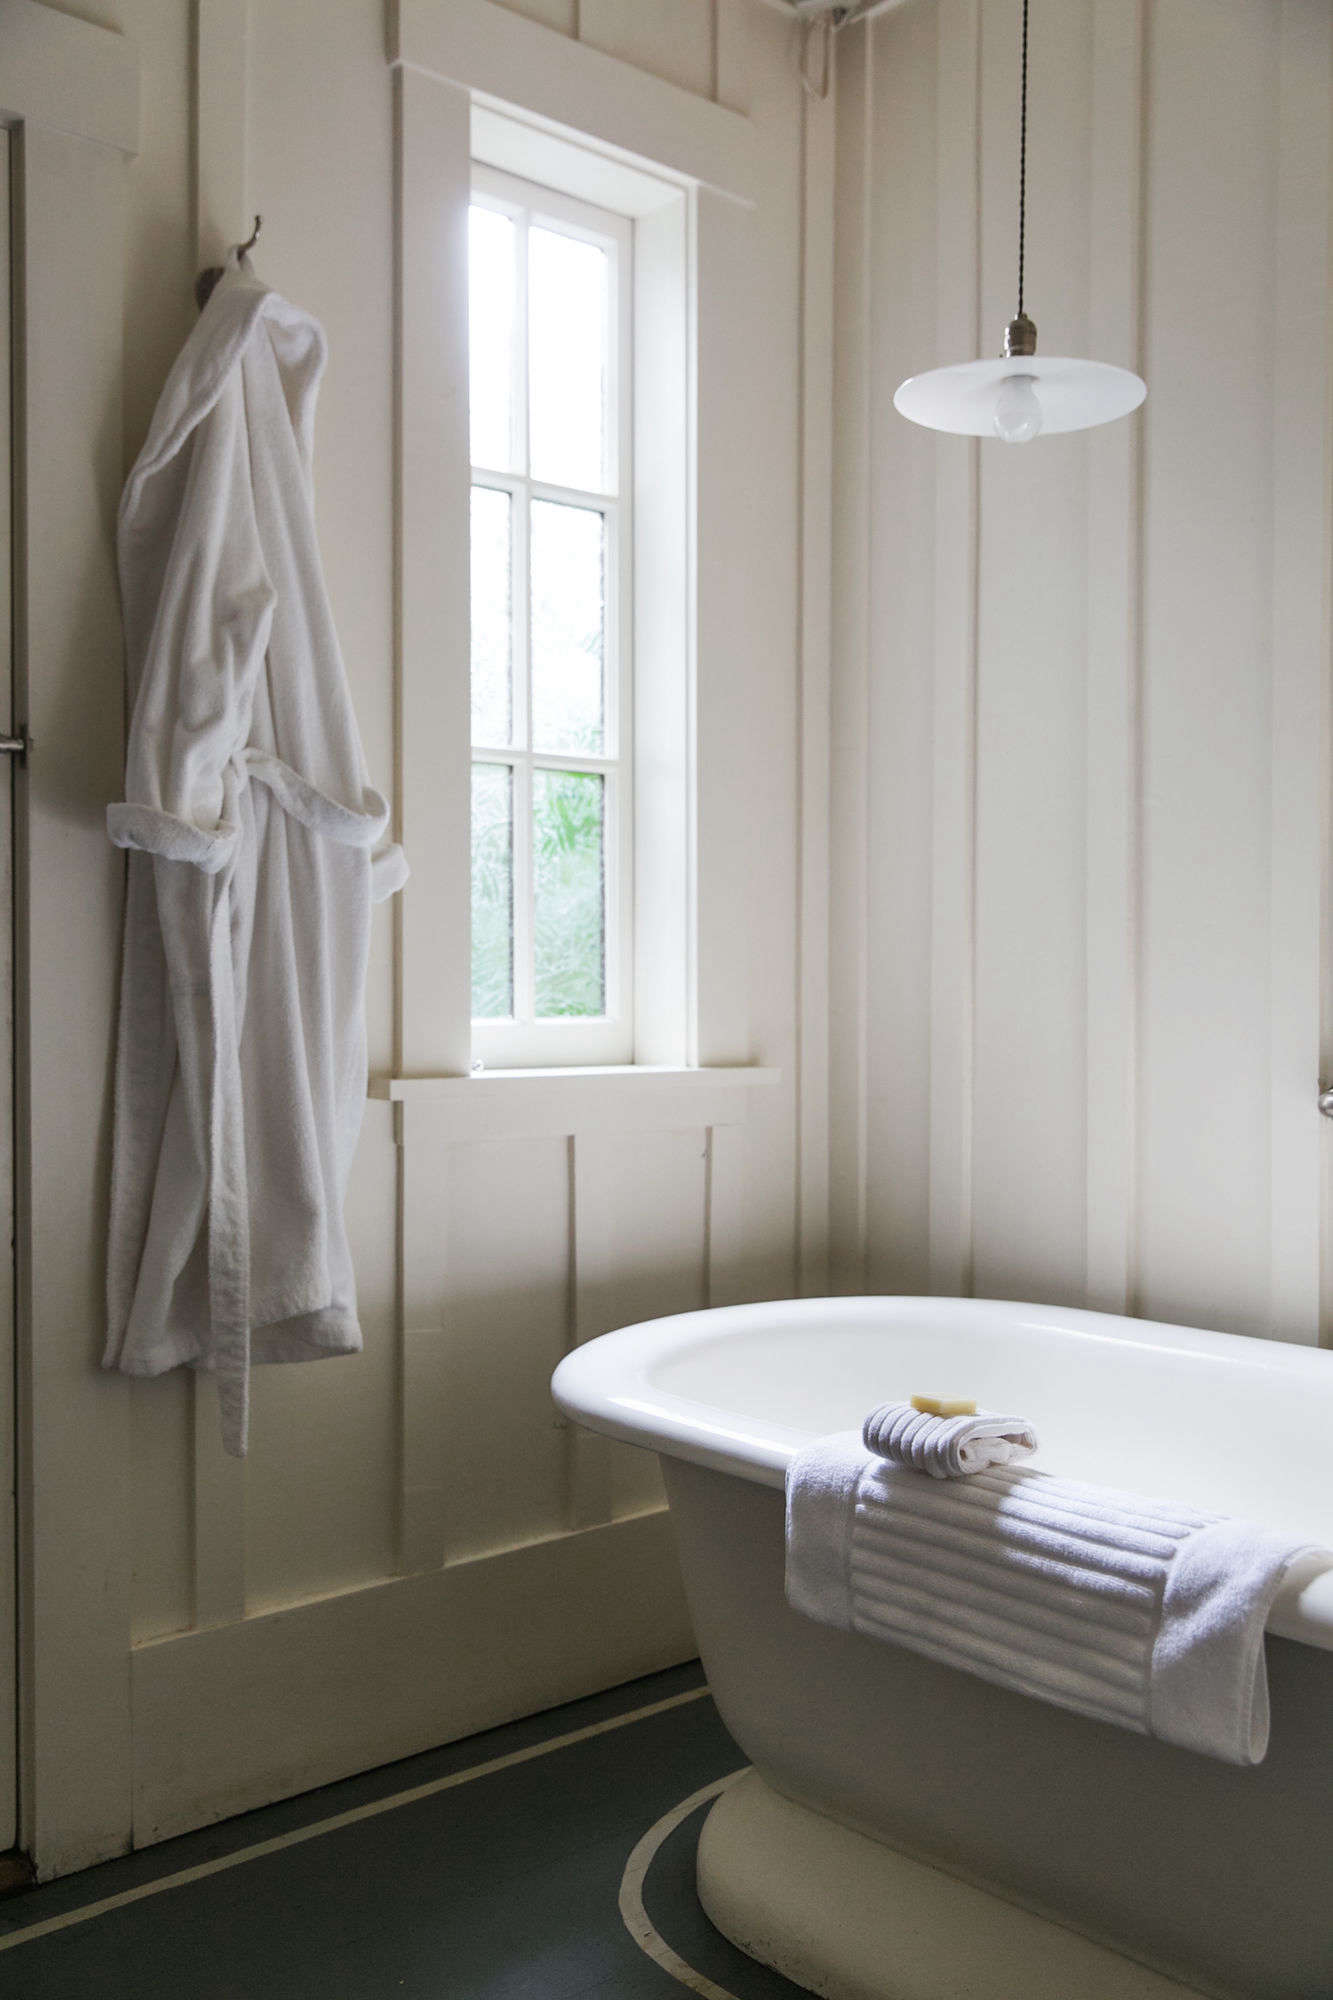 Weighty terry cloth robes and ribbed white towels make up the linens in the bath.Photograph by Andria Lo for Remodelista.